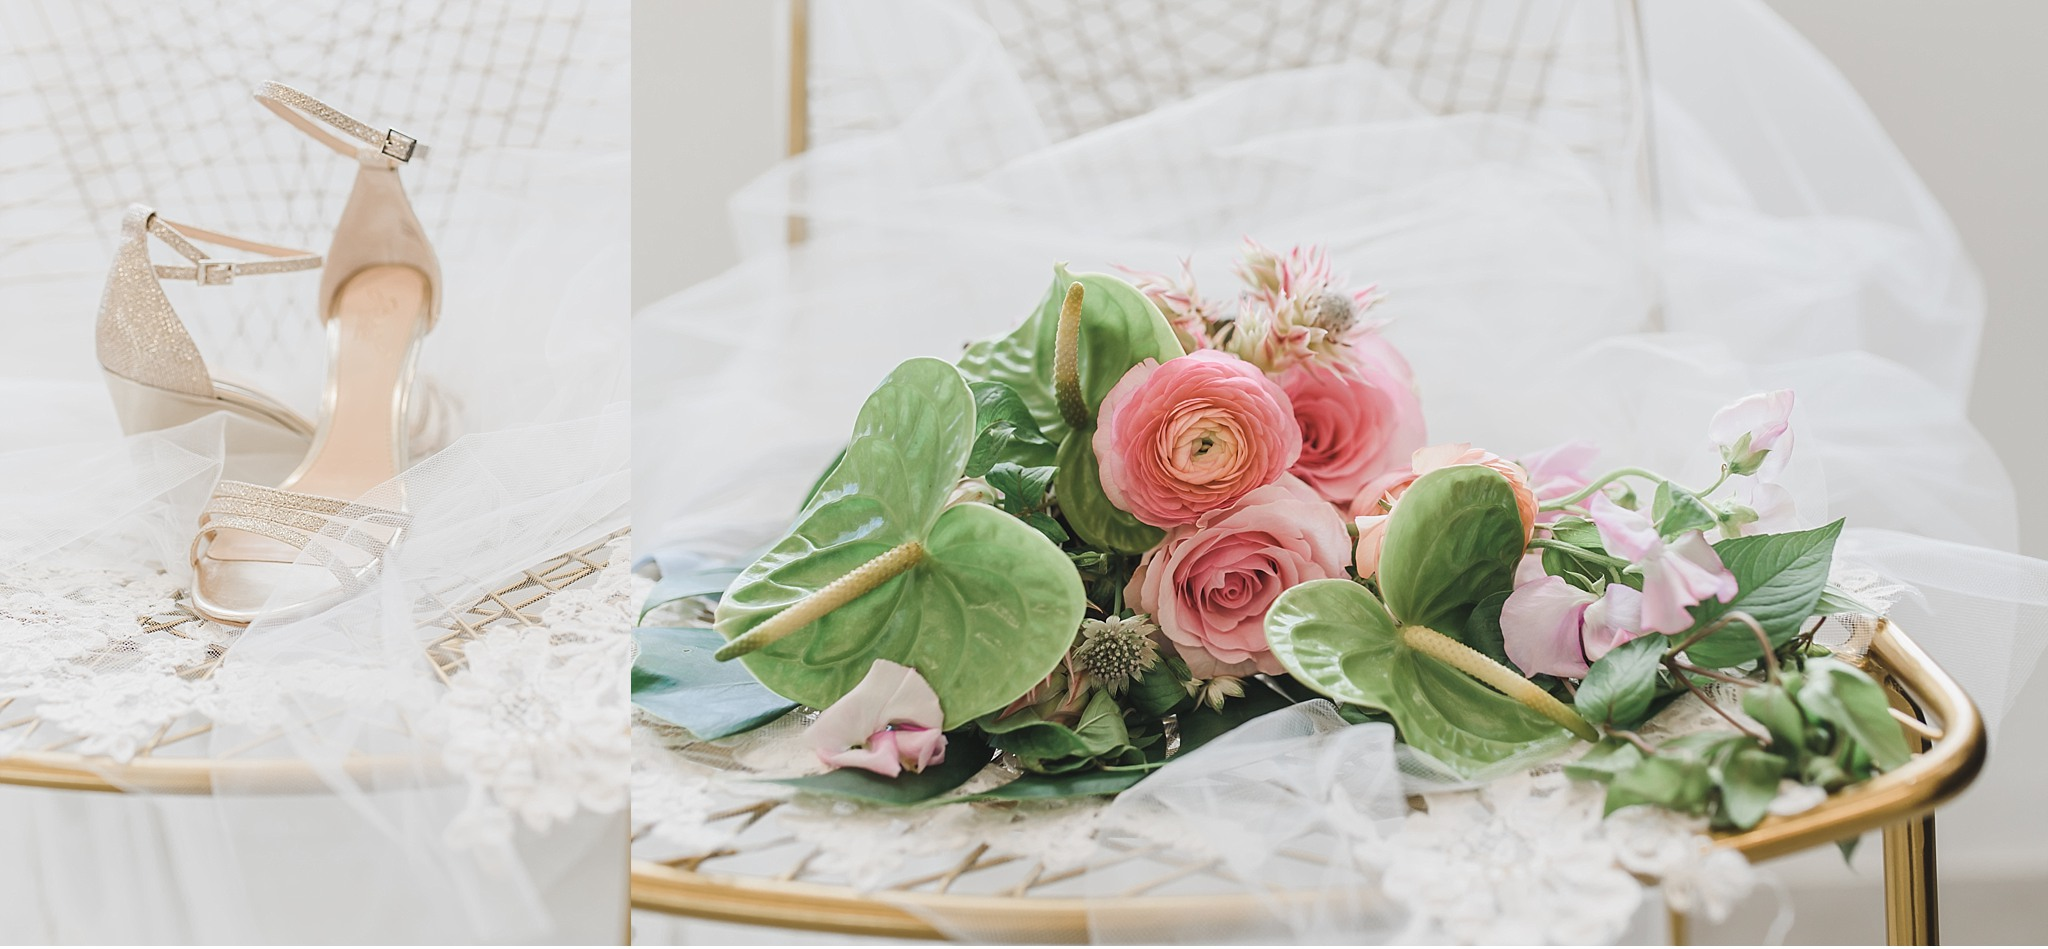 Beautiful shoes and florals Light and Airy Styled Greek Wedding Supply Manheim PA Wedding photography photo_1899.jpg